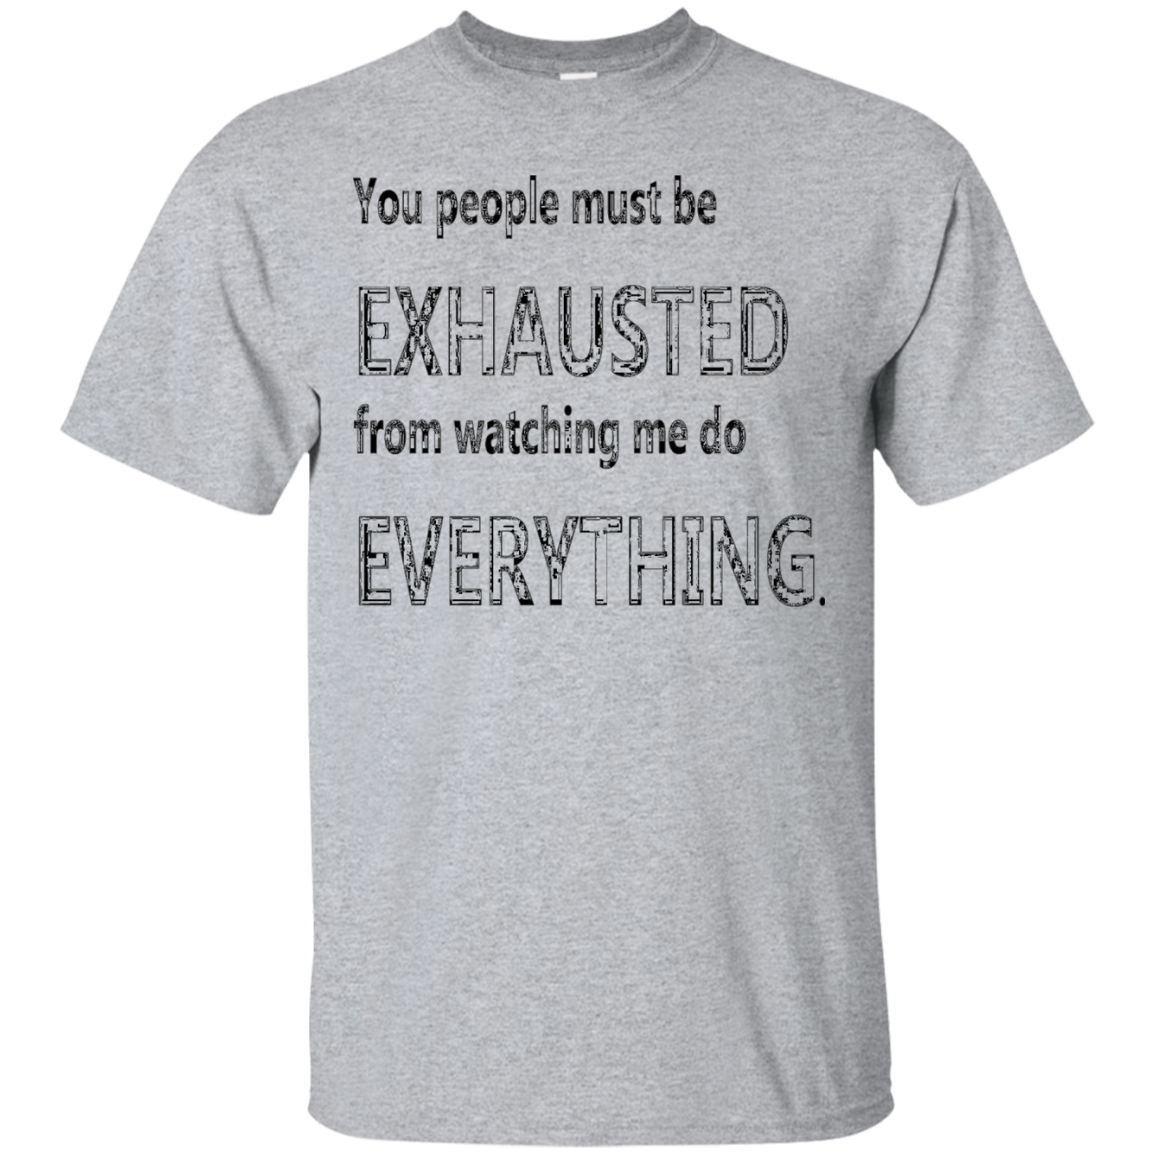 You people must be EXHAUSTED from watching me do EVERYTHING - T-Shirt